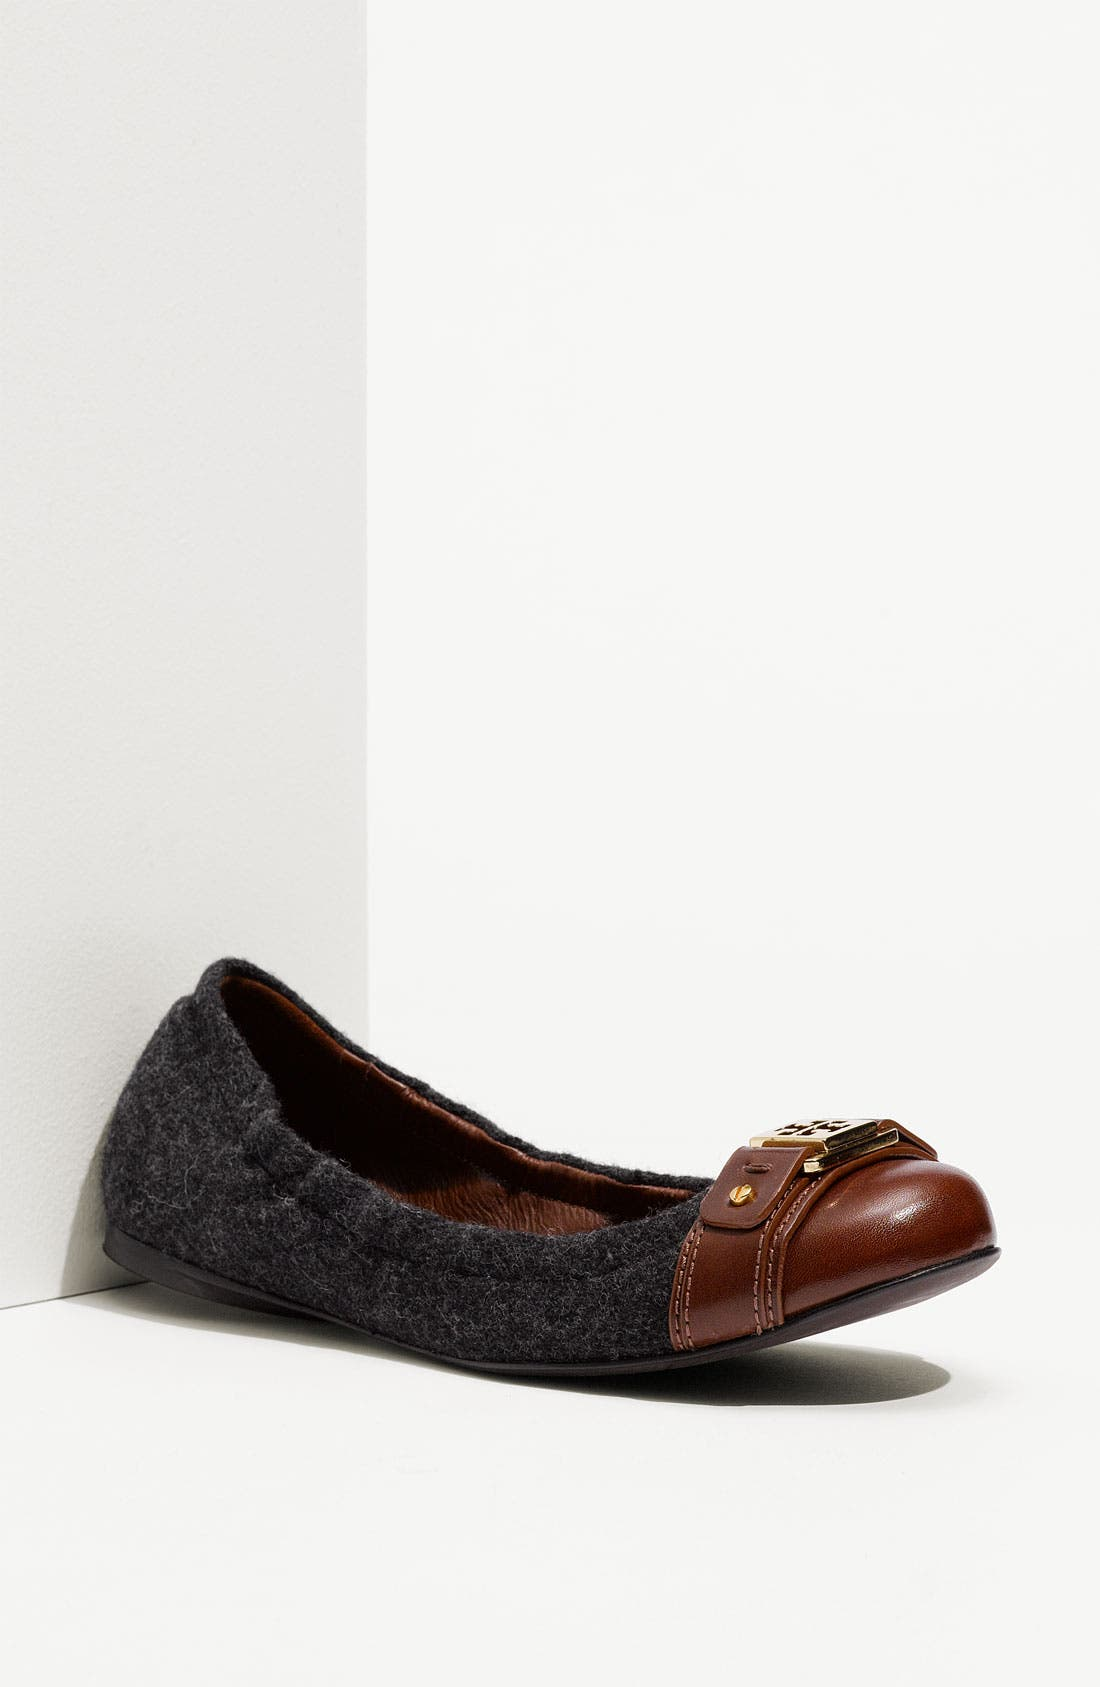 Main Image - Tory Burch 'Ambrose' Cap Toe Flannel Flat (Nordstrom Exclusive)